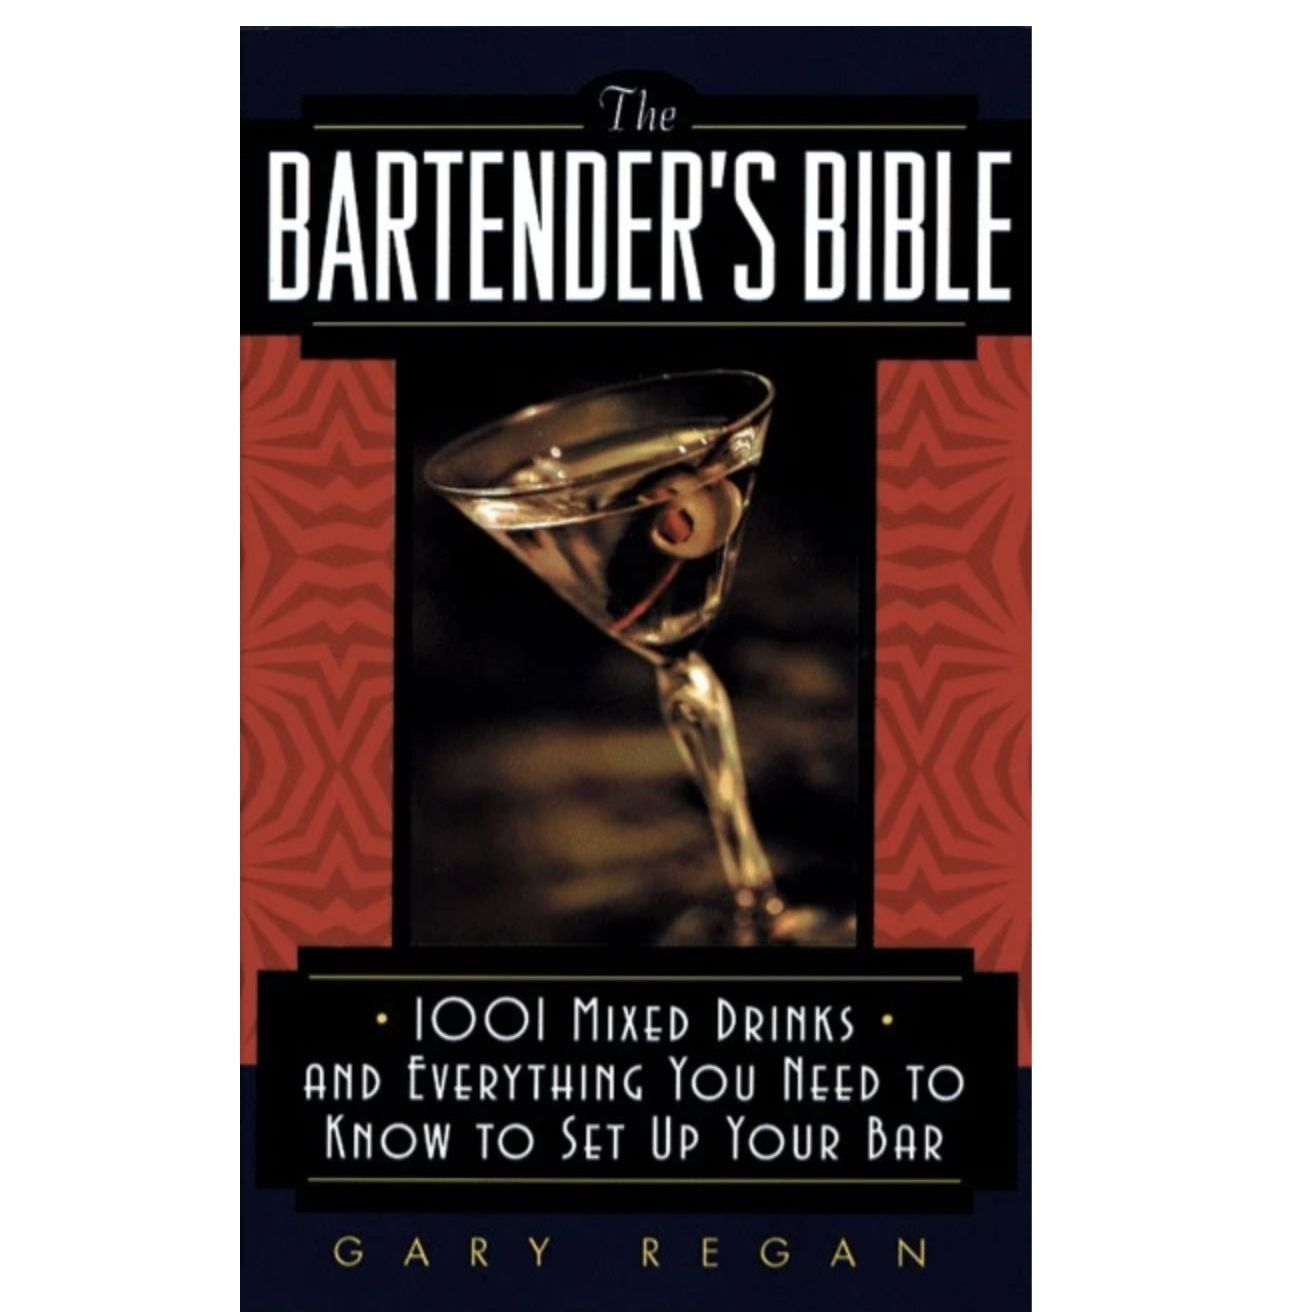 """""""The Bartender's Bible: 1001 Mixed Drinks and Everything You Need to Know to Set up Your Bar"""" by Gary Regan"""